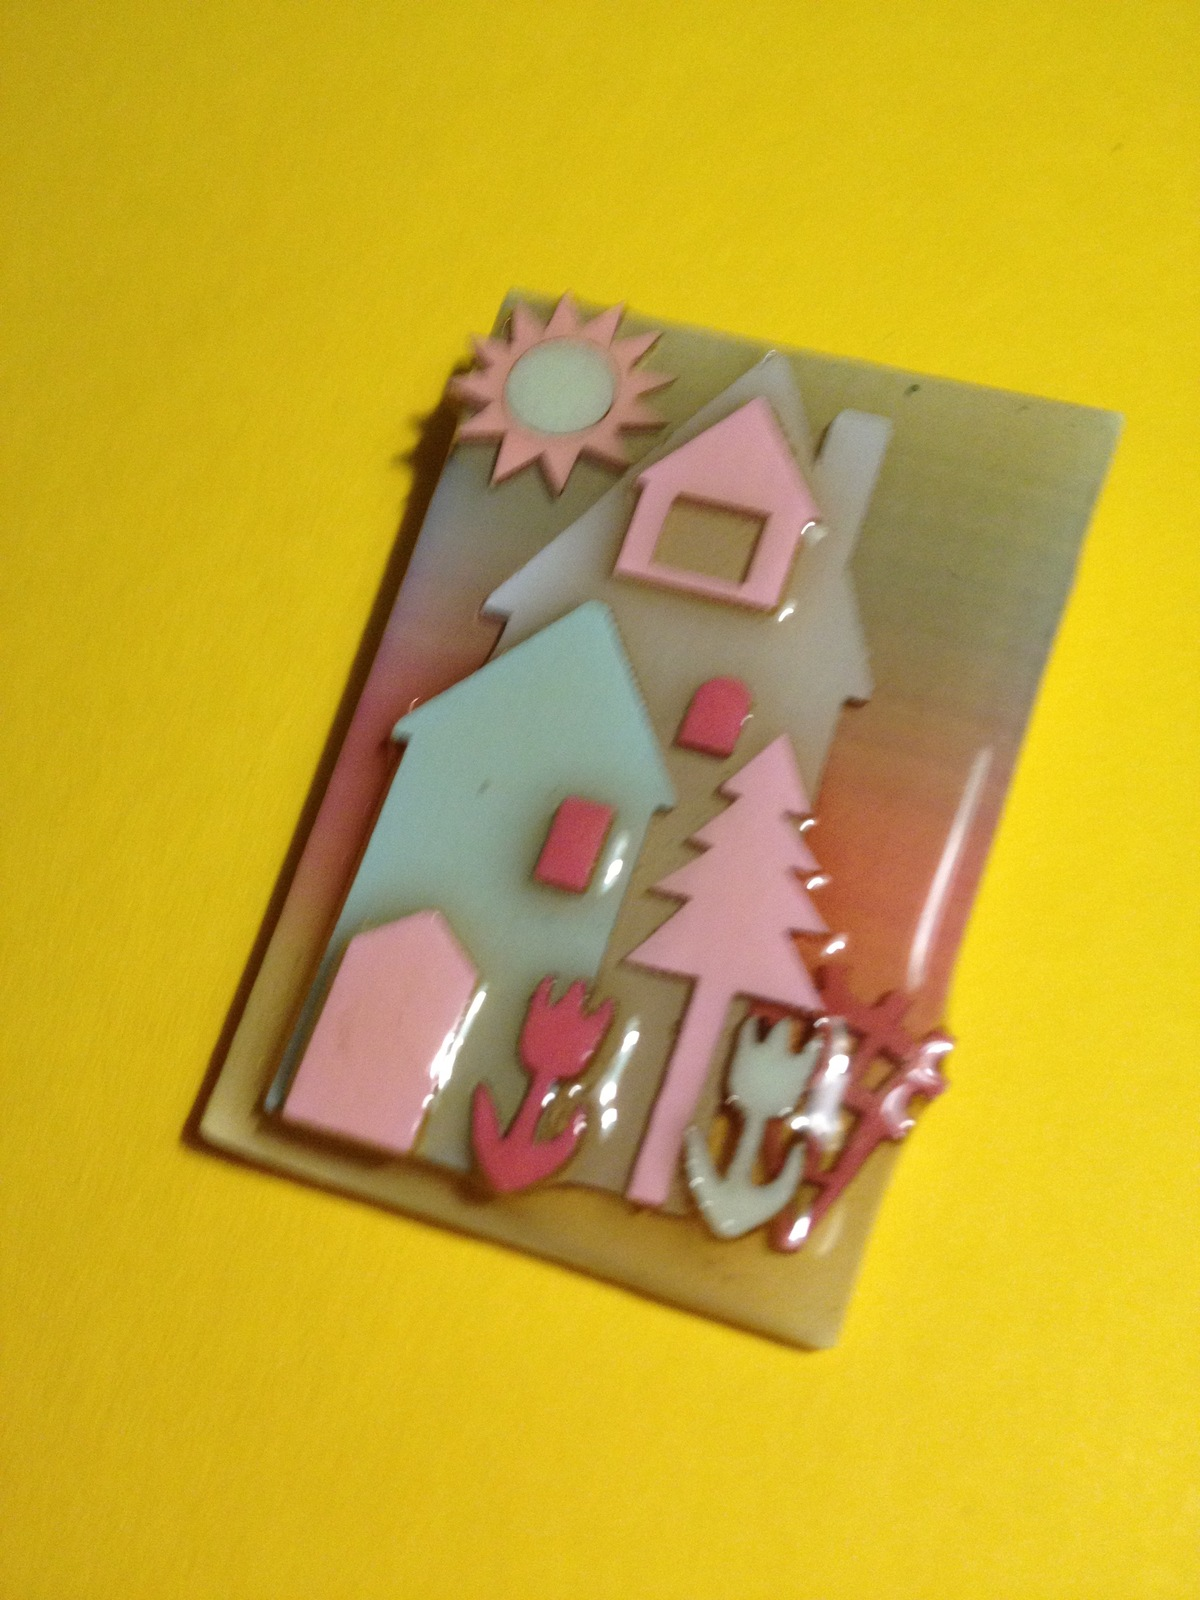 HOUSE PIN by Lucinda - one of a kind - Maine artist - FREE SHIPPING